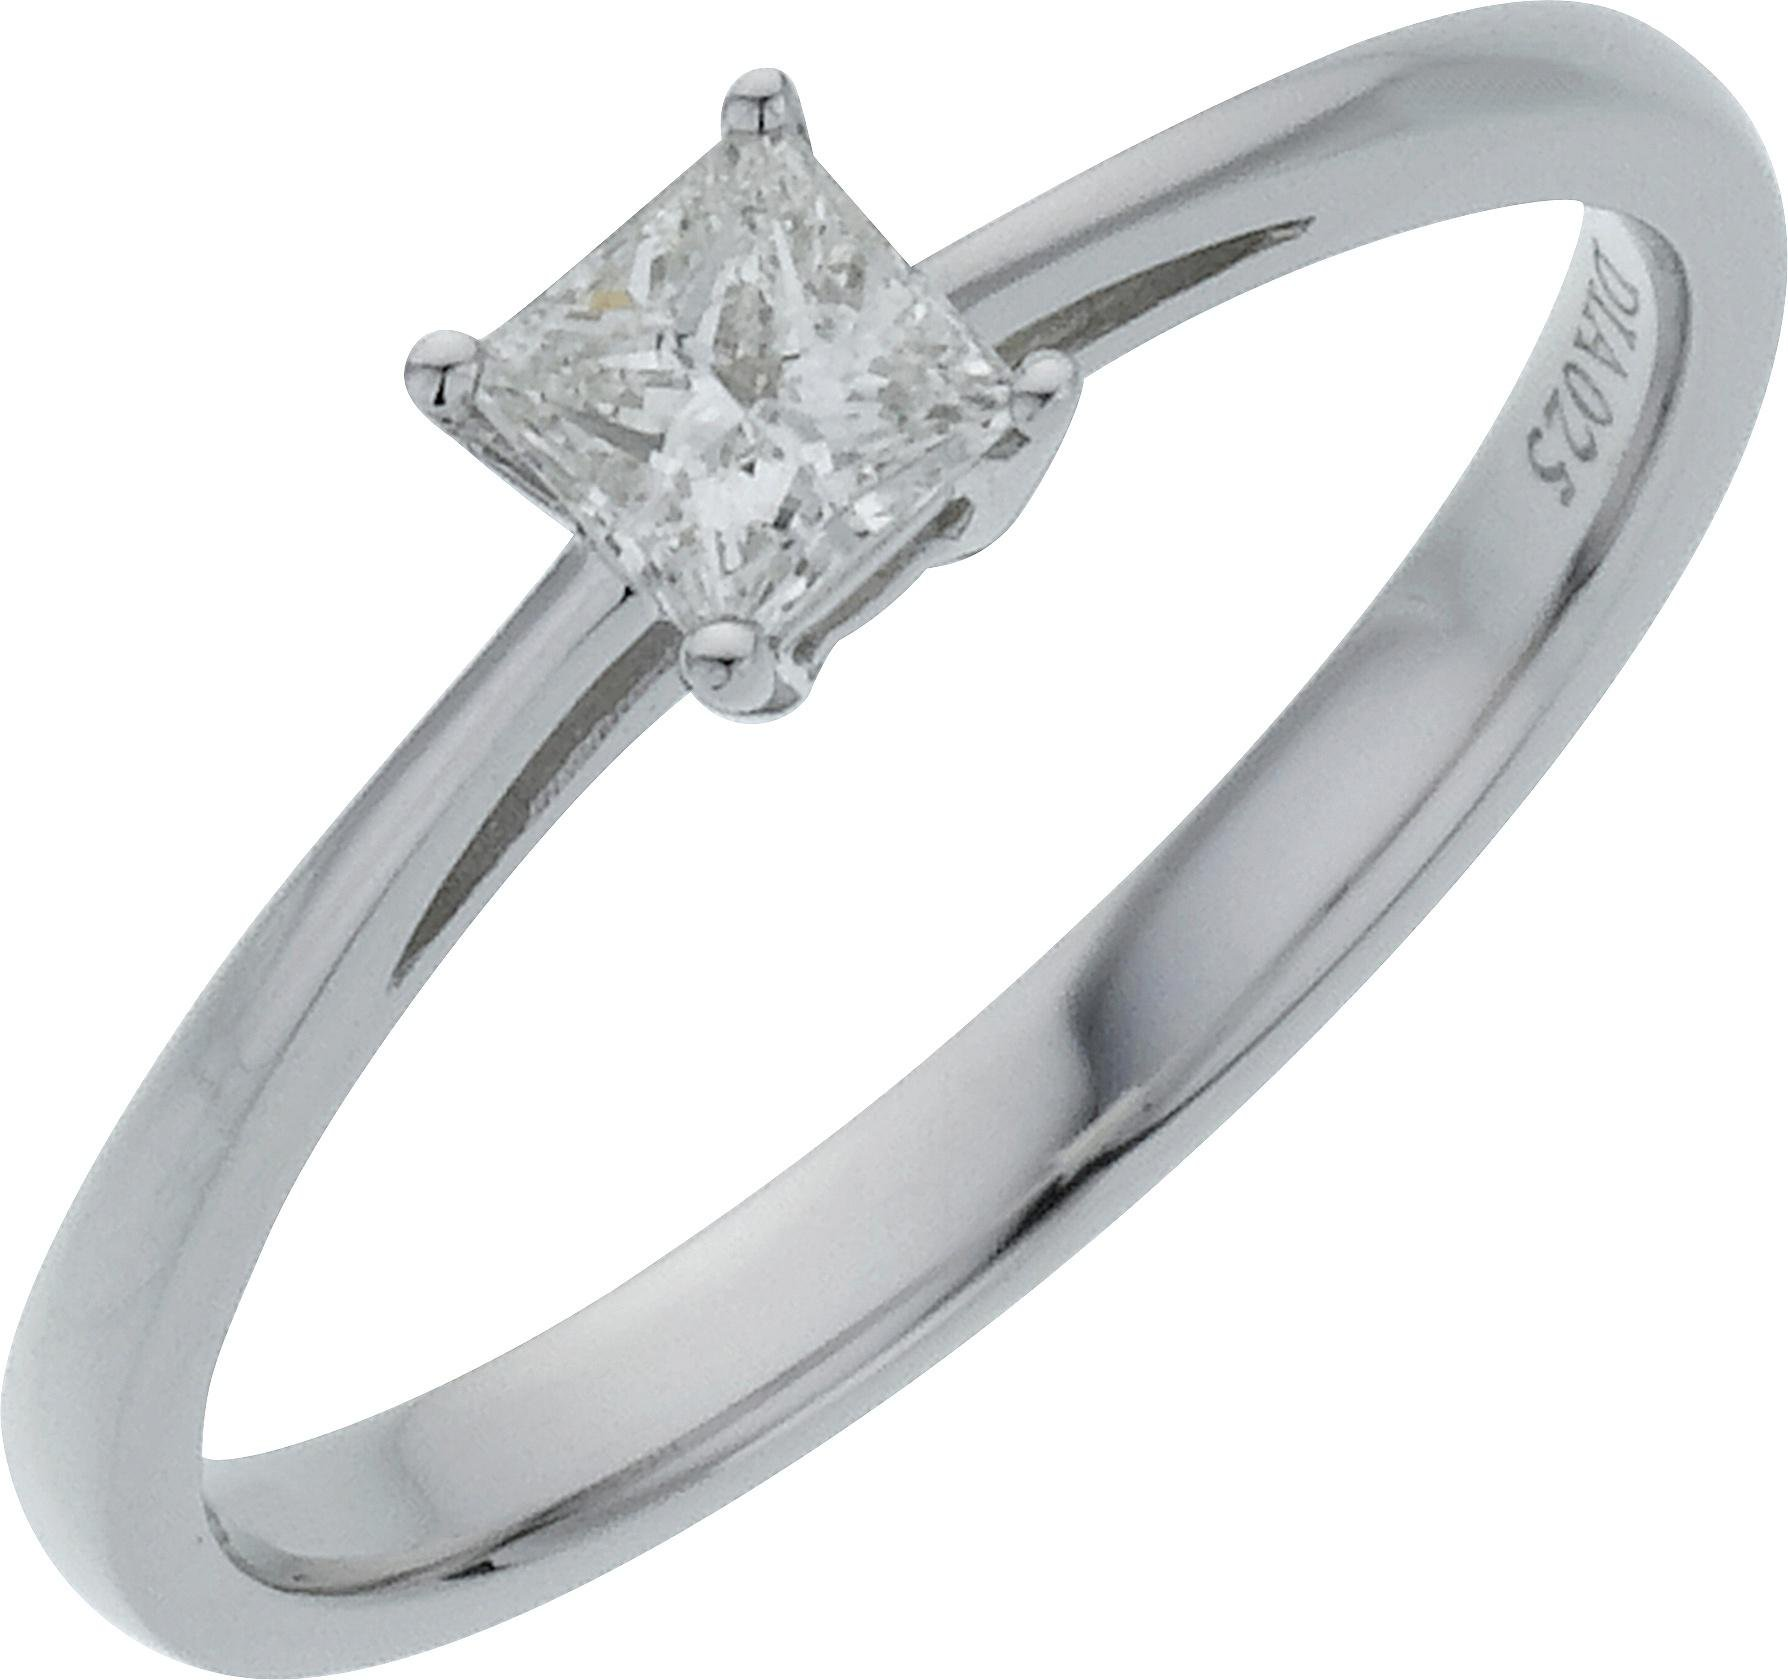 18 Carat White Gold 025 Carat Diamond - Princess Cut Diamond - Ring - K